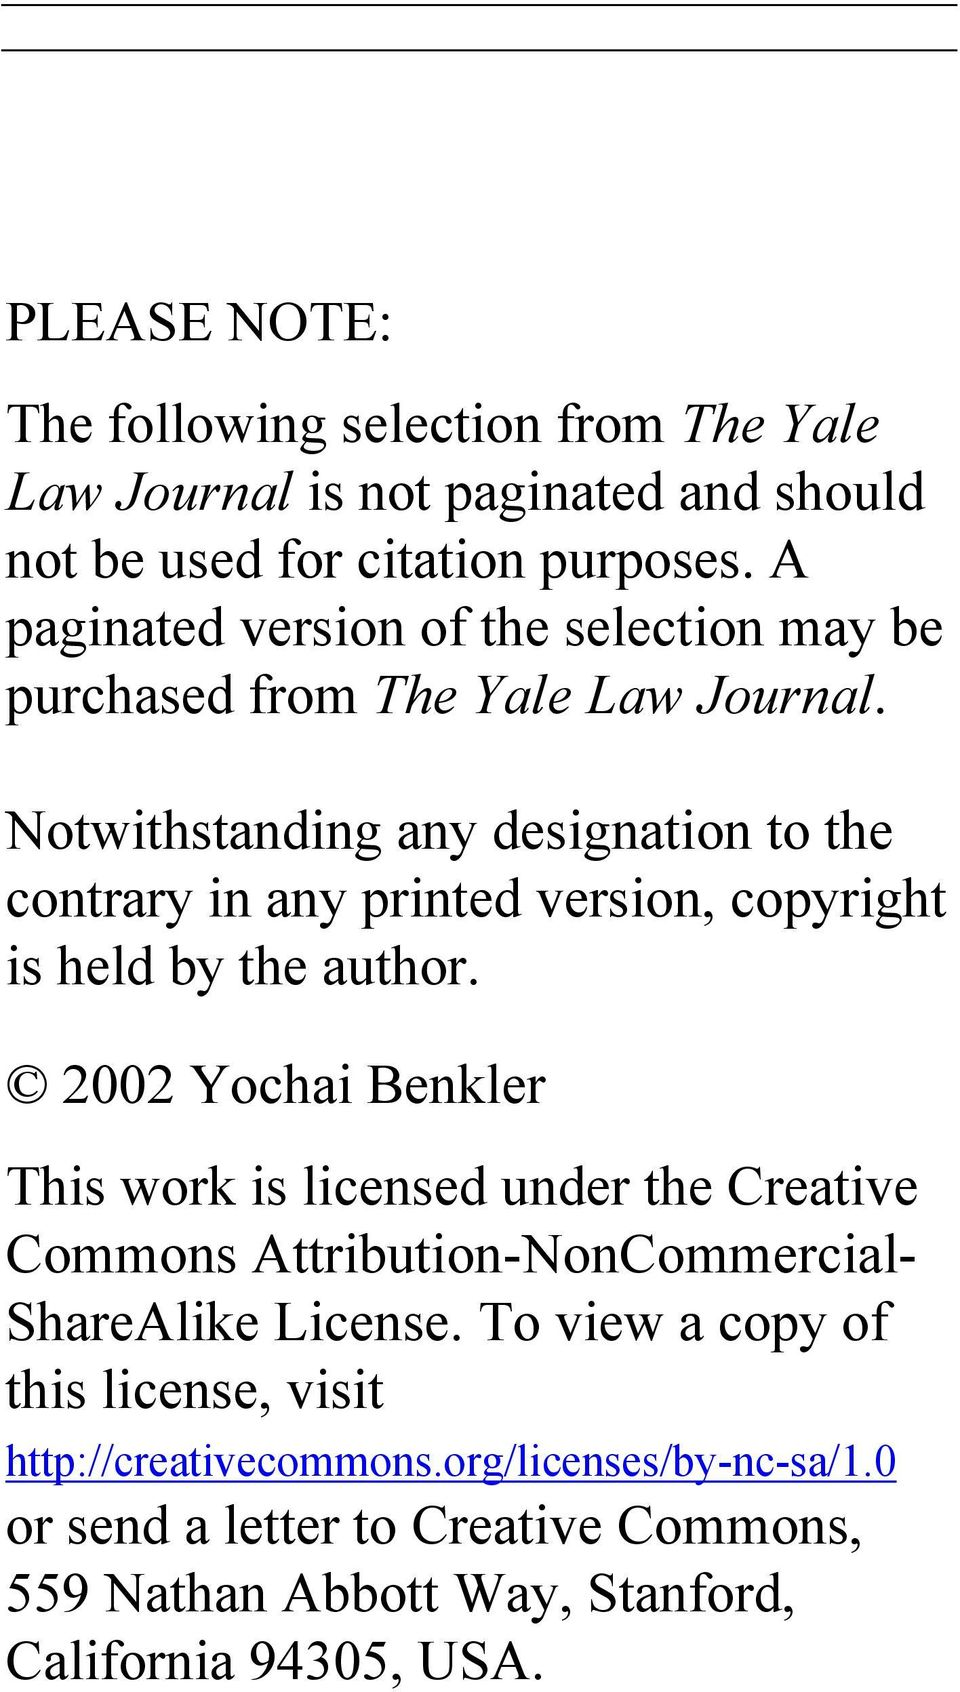 Notwithstanding any designation to the contrary in any printed version, copyright is held by the author.